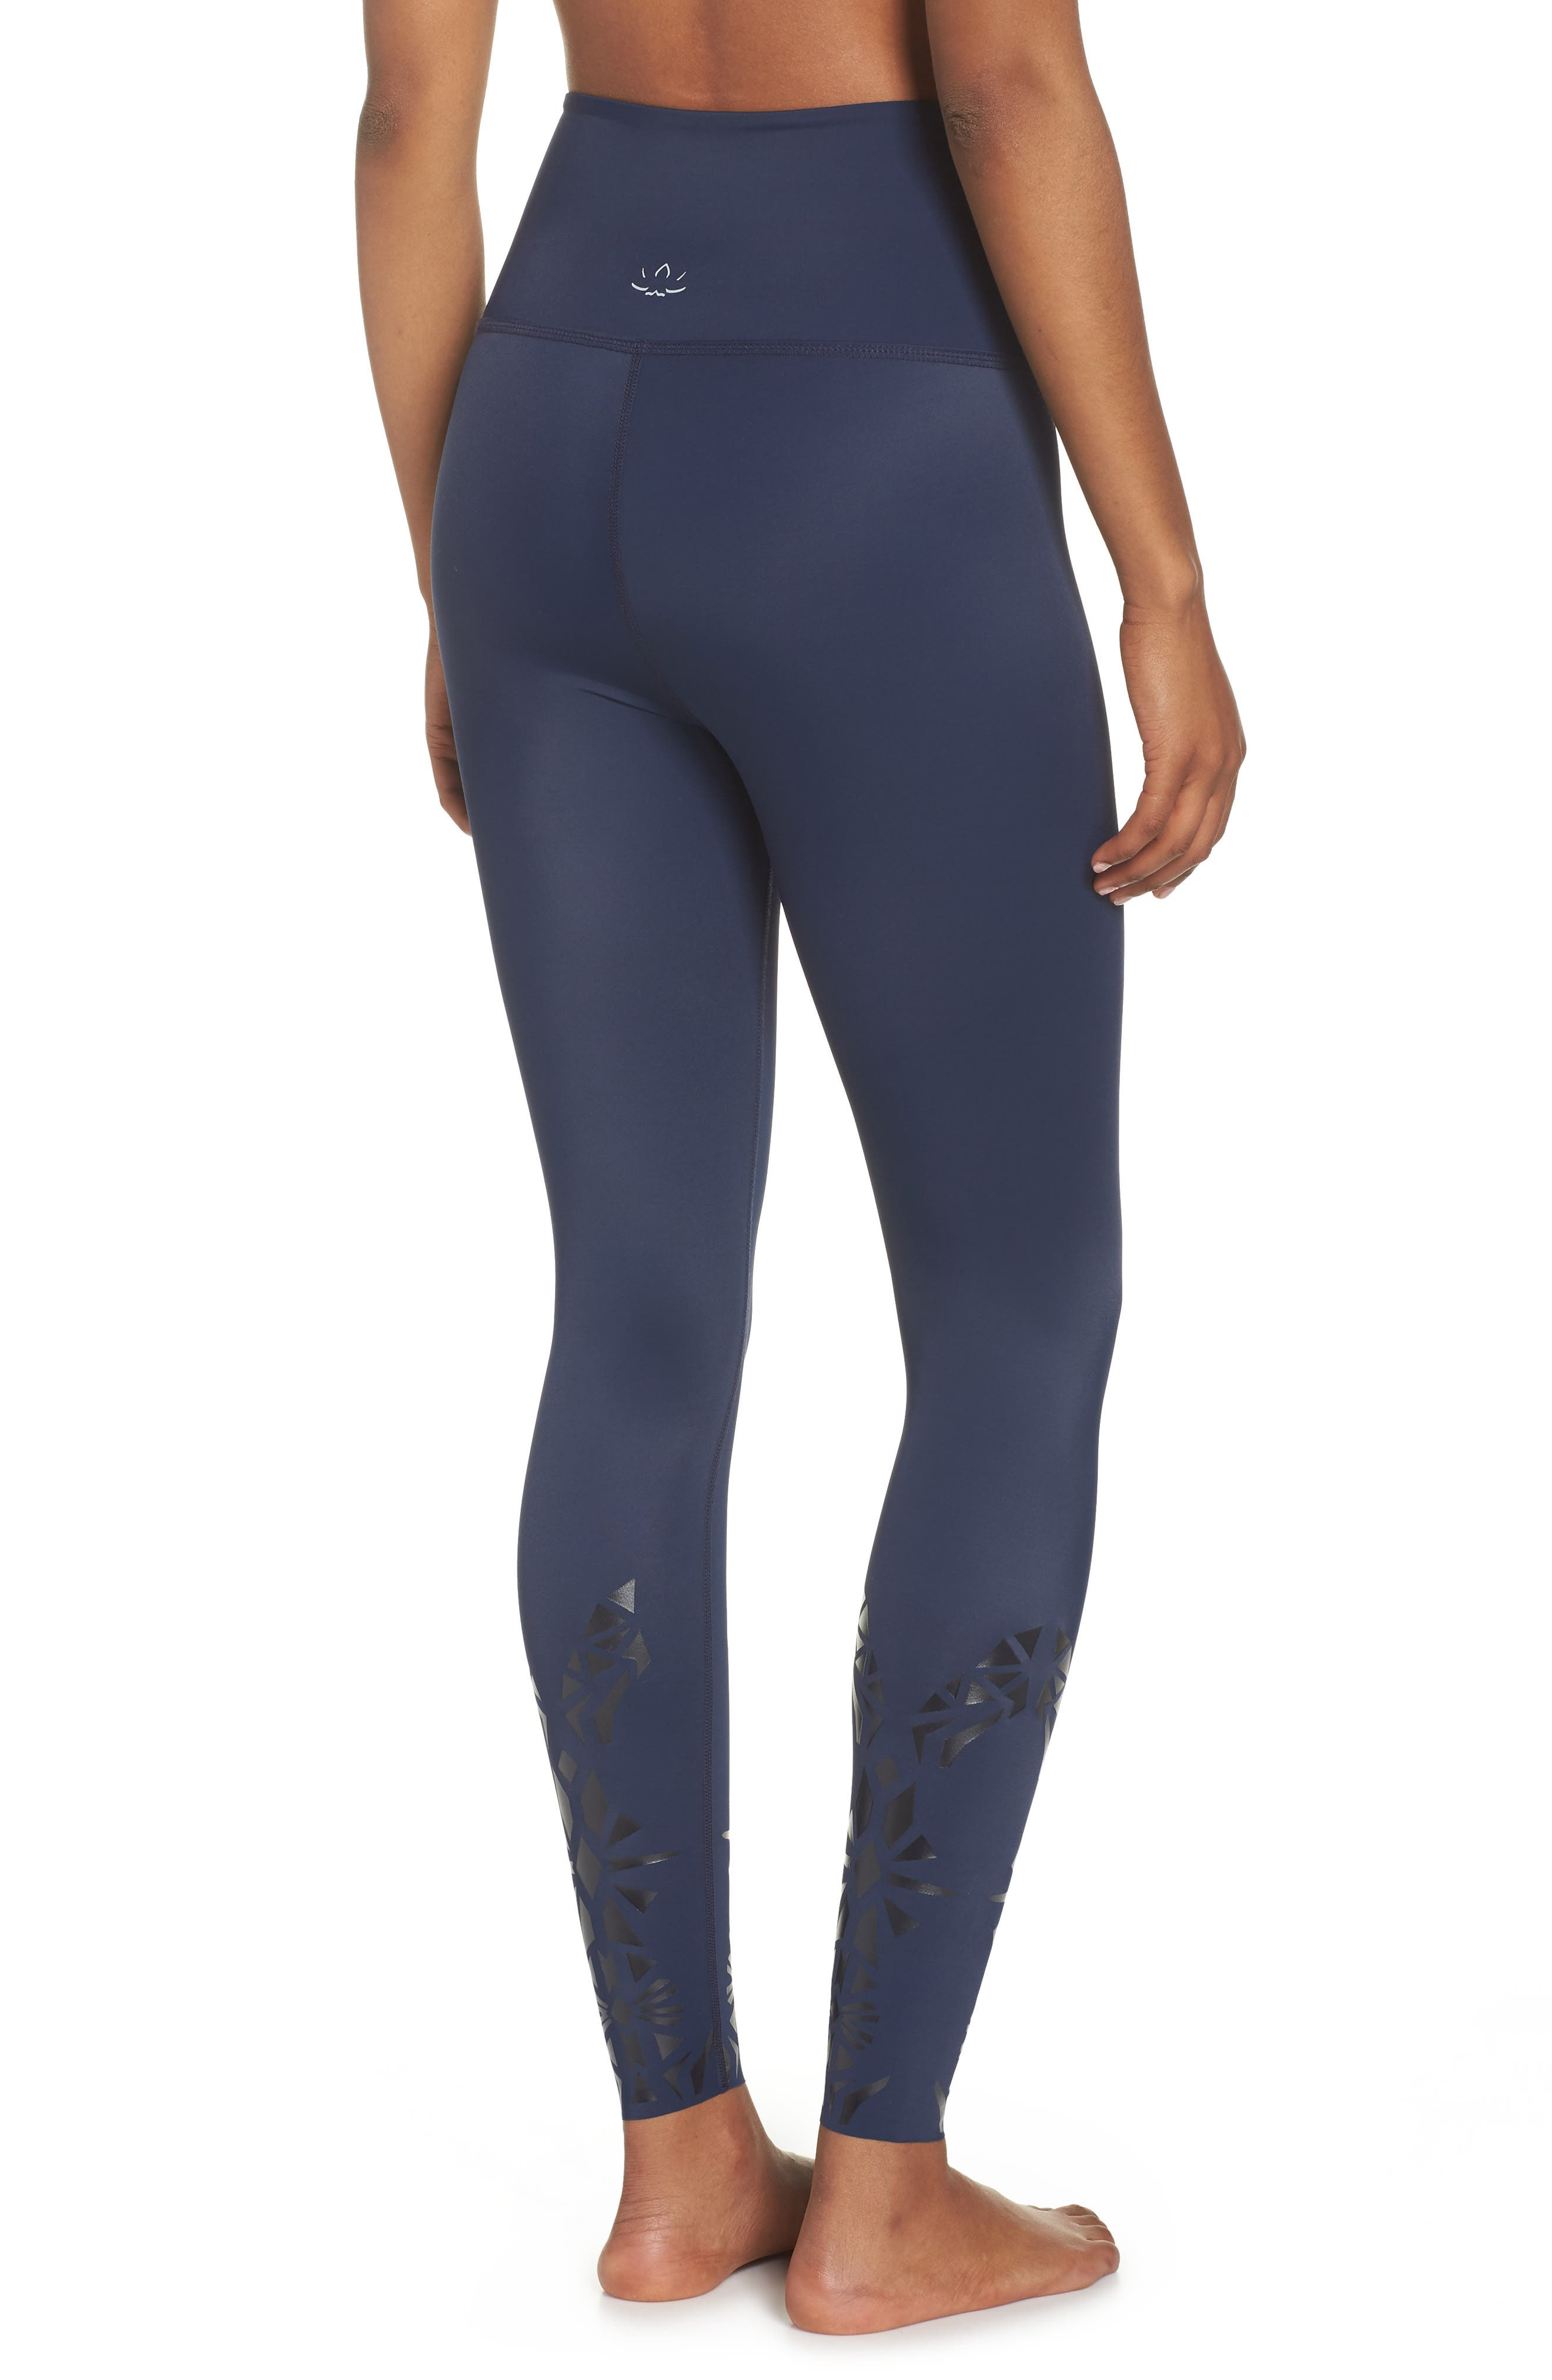 Calico High Waist Leggings,                             Alternate thumbnail 2, color,                             418